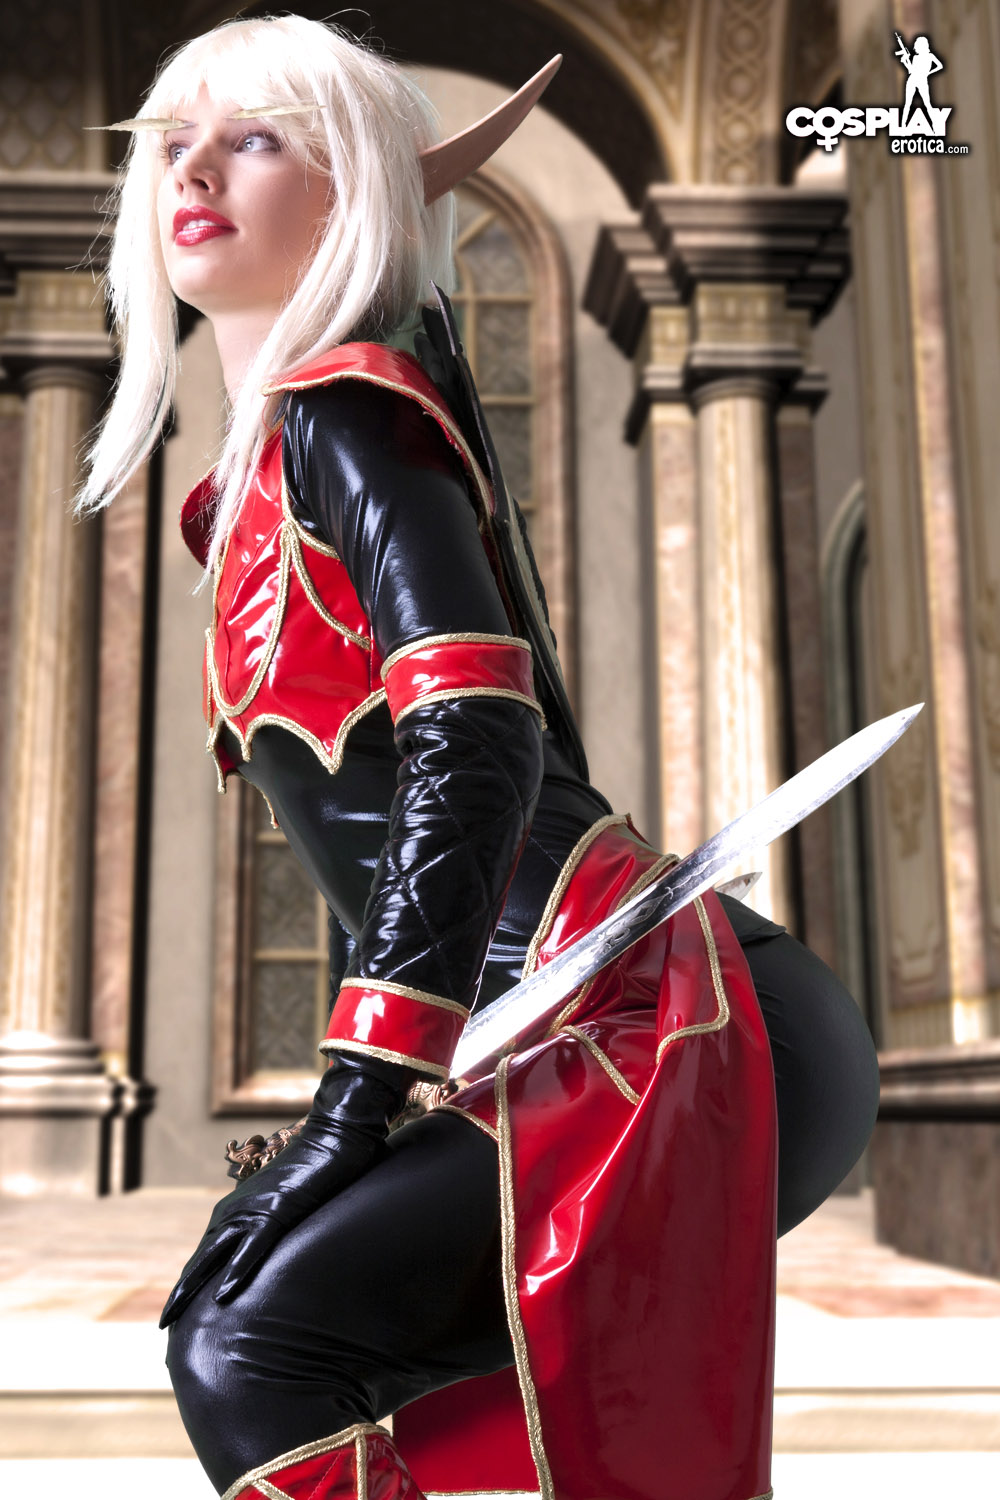 World of warcraft blood elf cosplay nude anime video